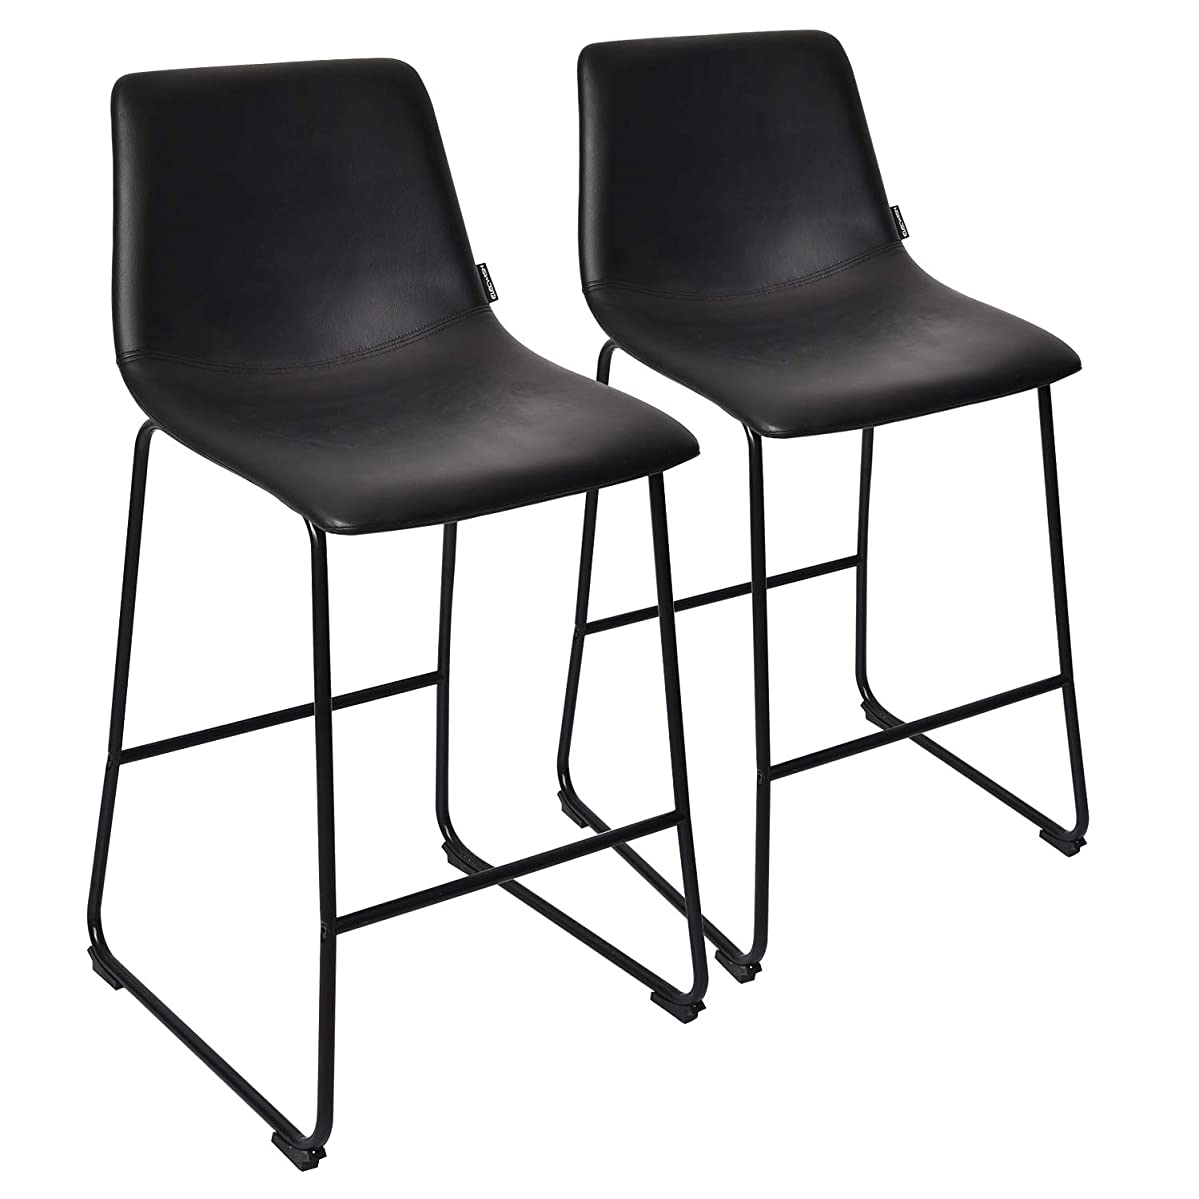 PULUOMIS Black Faux Leather Barstool Set of 2,Counter Height Stools with Metal Sled Base Home Kitchen Dining